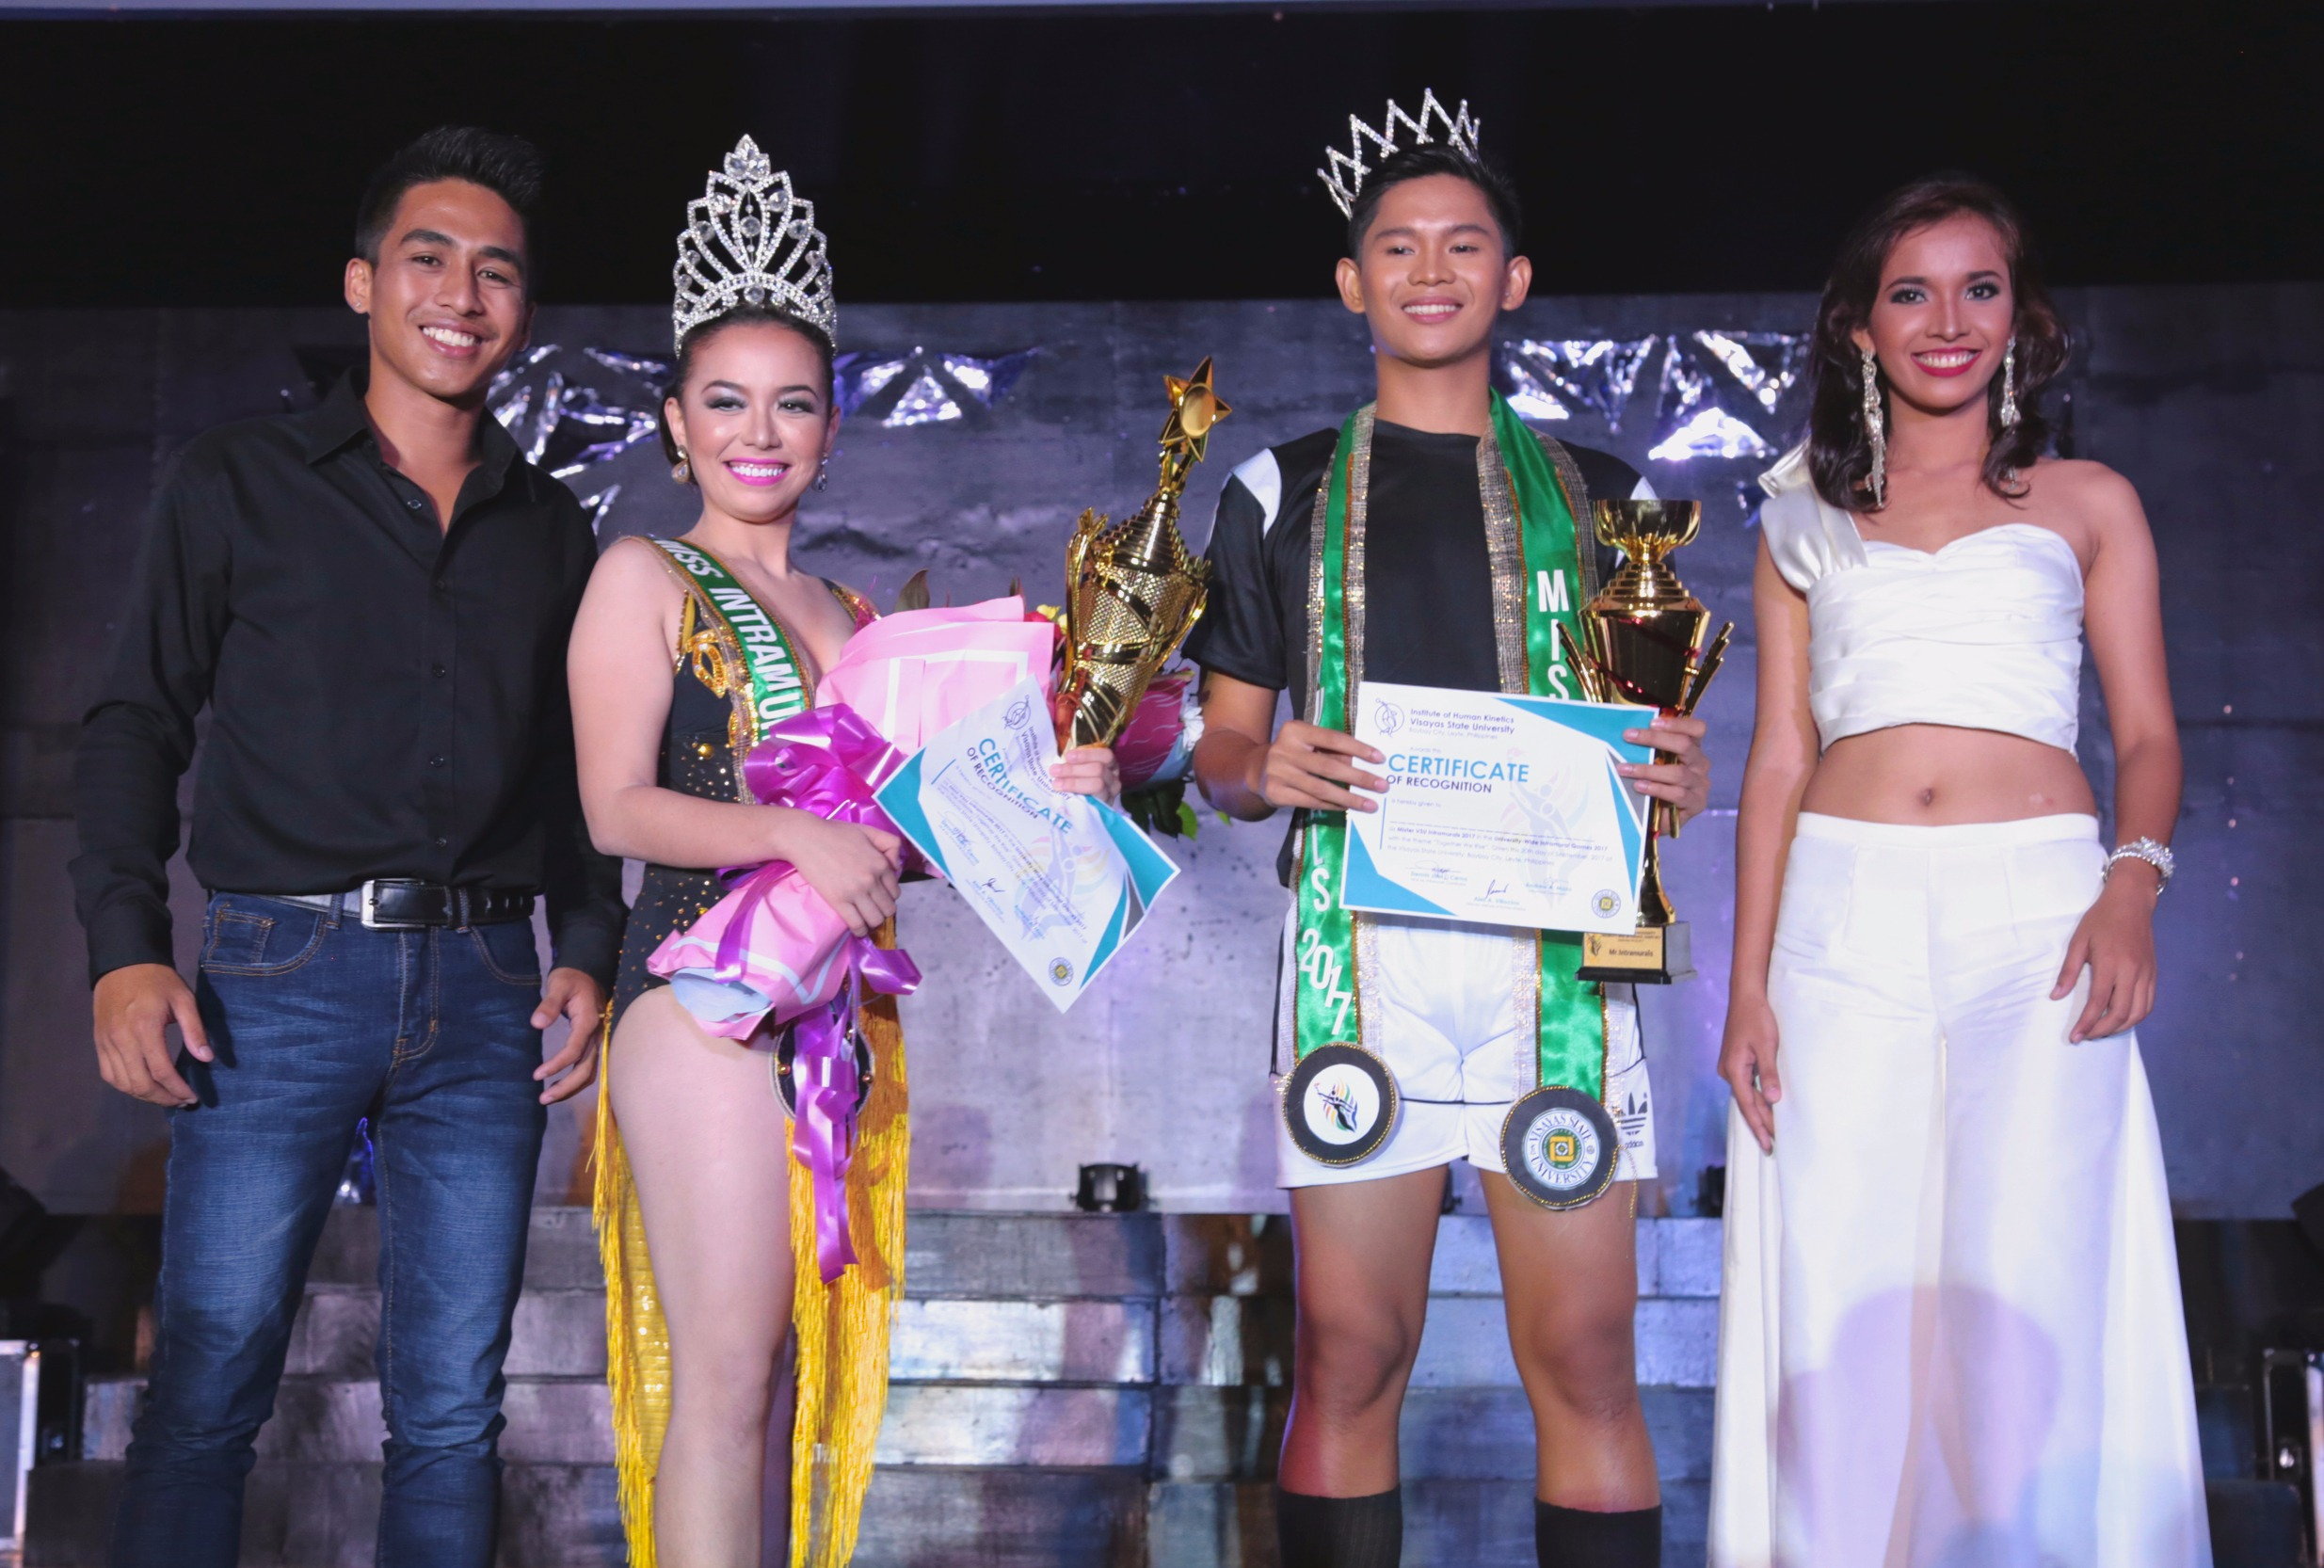 REFINED. Sylvan Dragon's, Mr. Nichol John Suficiencia and Guardian's, Ms. Trishia Jade Acilo posing with Mr. Alexander Luminario and Ms. Carmela Rustia after being crowned Mr. and Ms. Intramurals 2017. Photo by VSU Web Teams